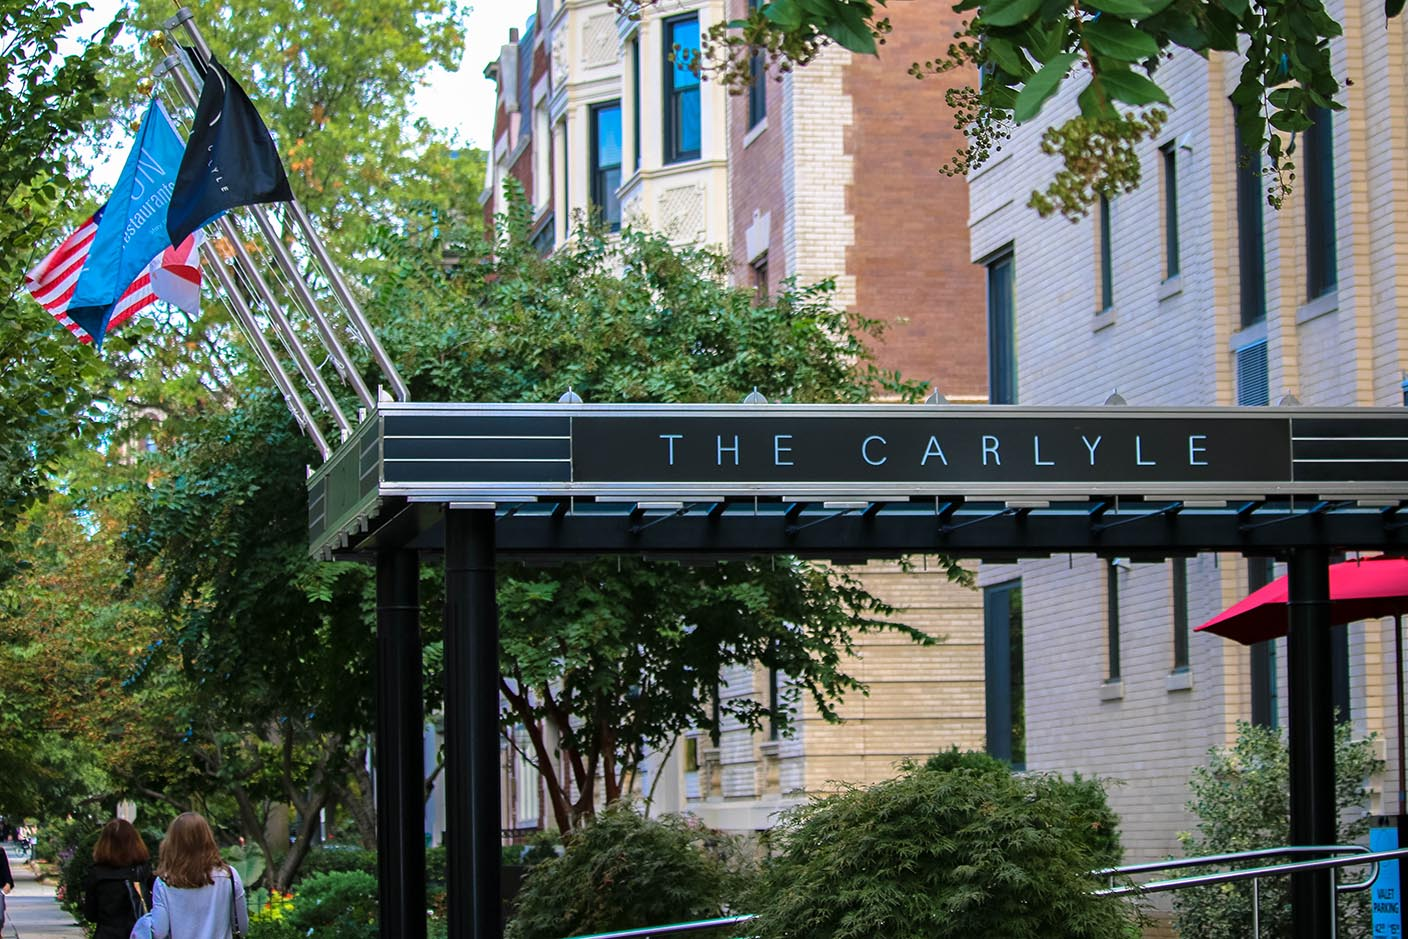 The Carlyle in Dupont Circle, Washington, D.C.